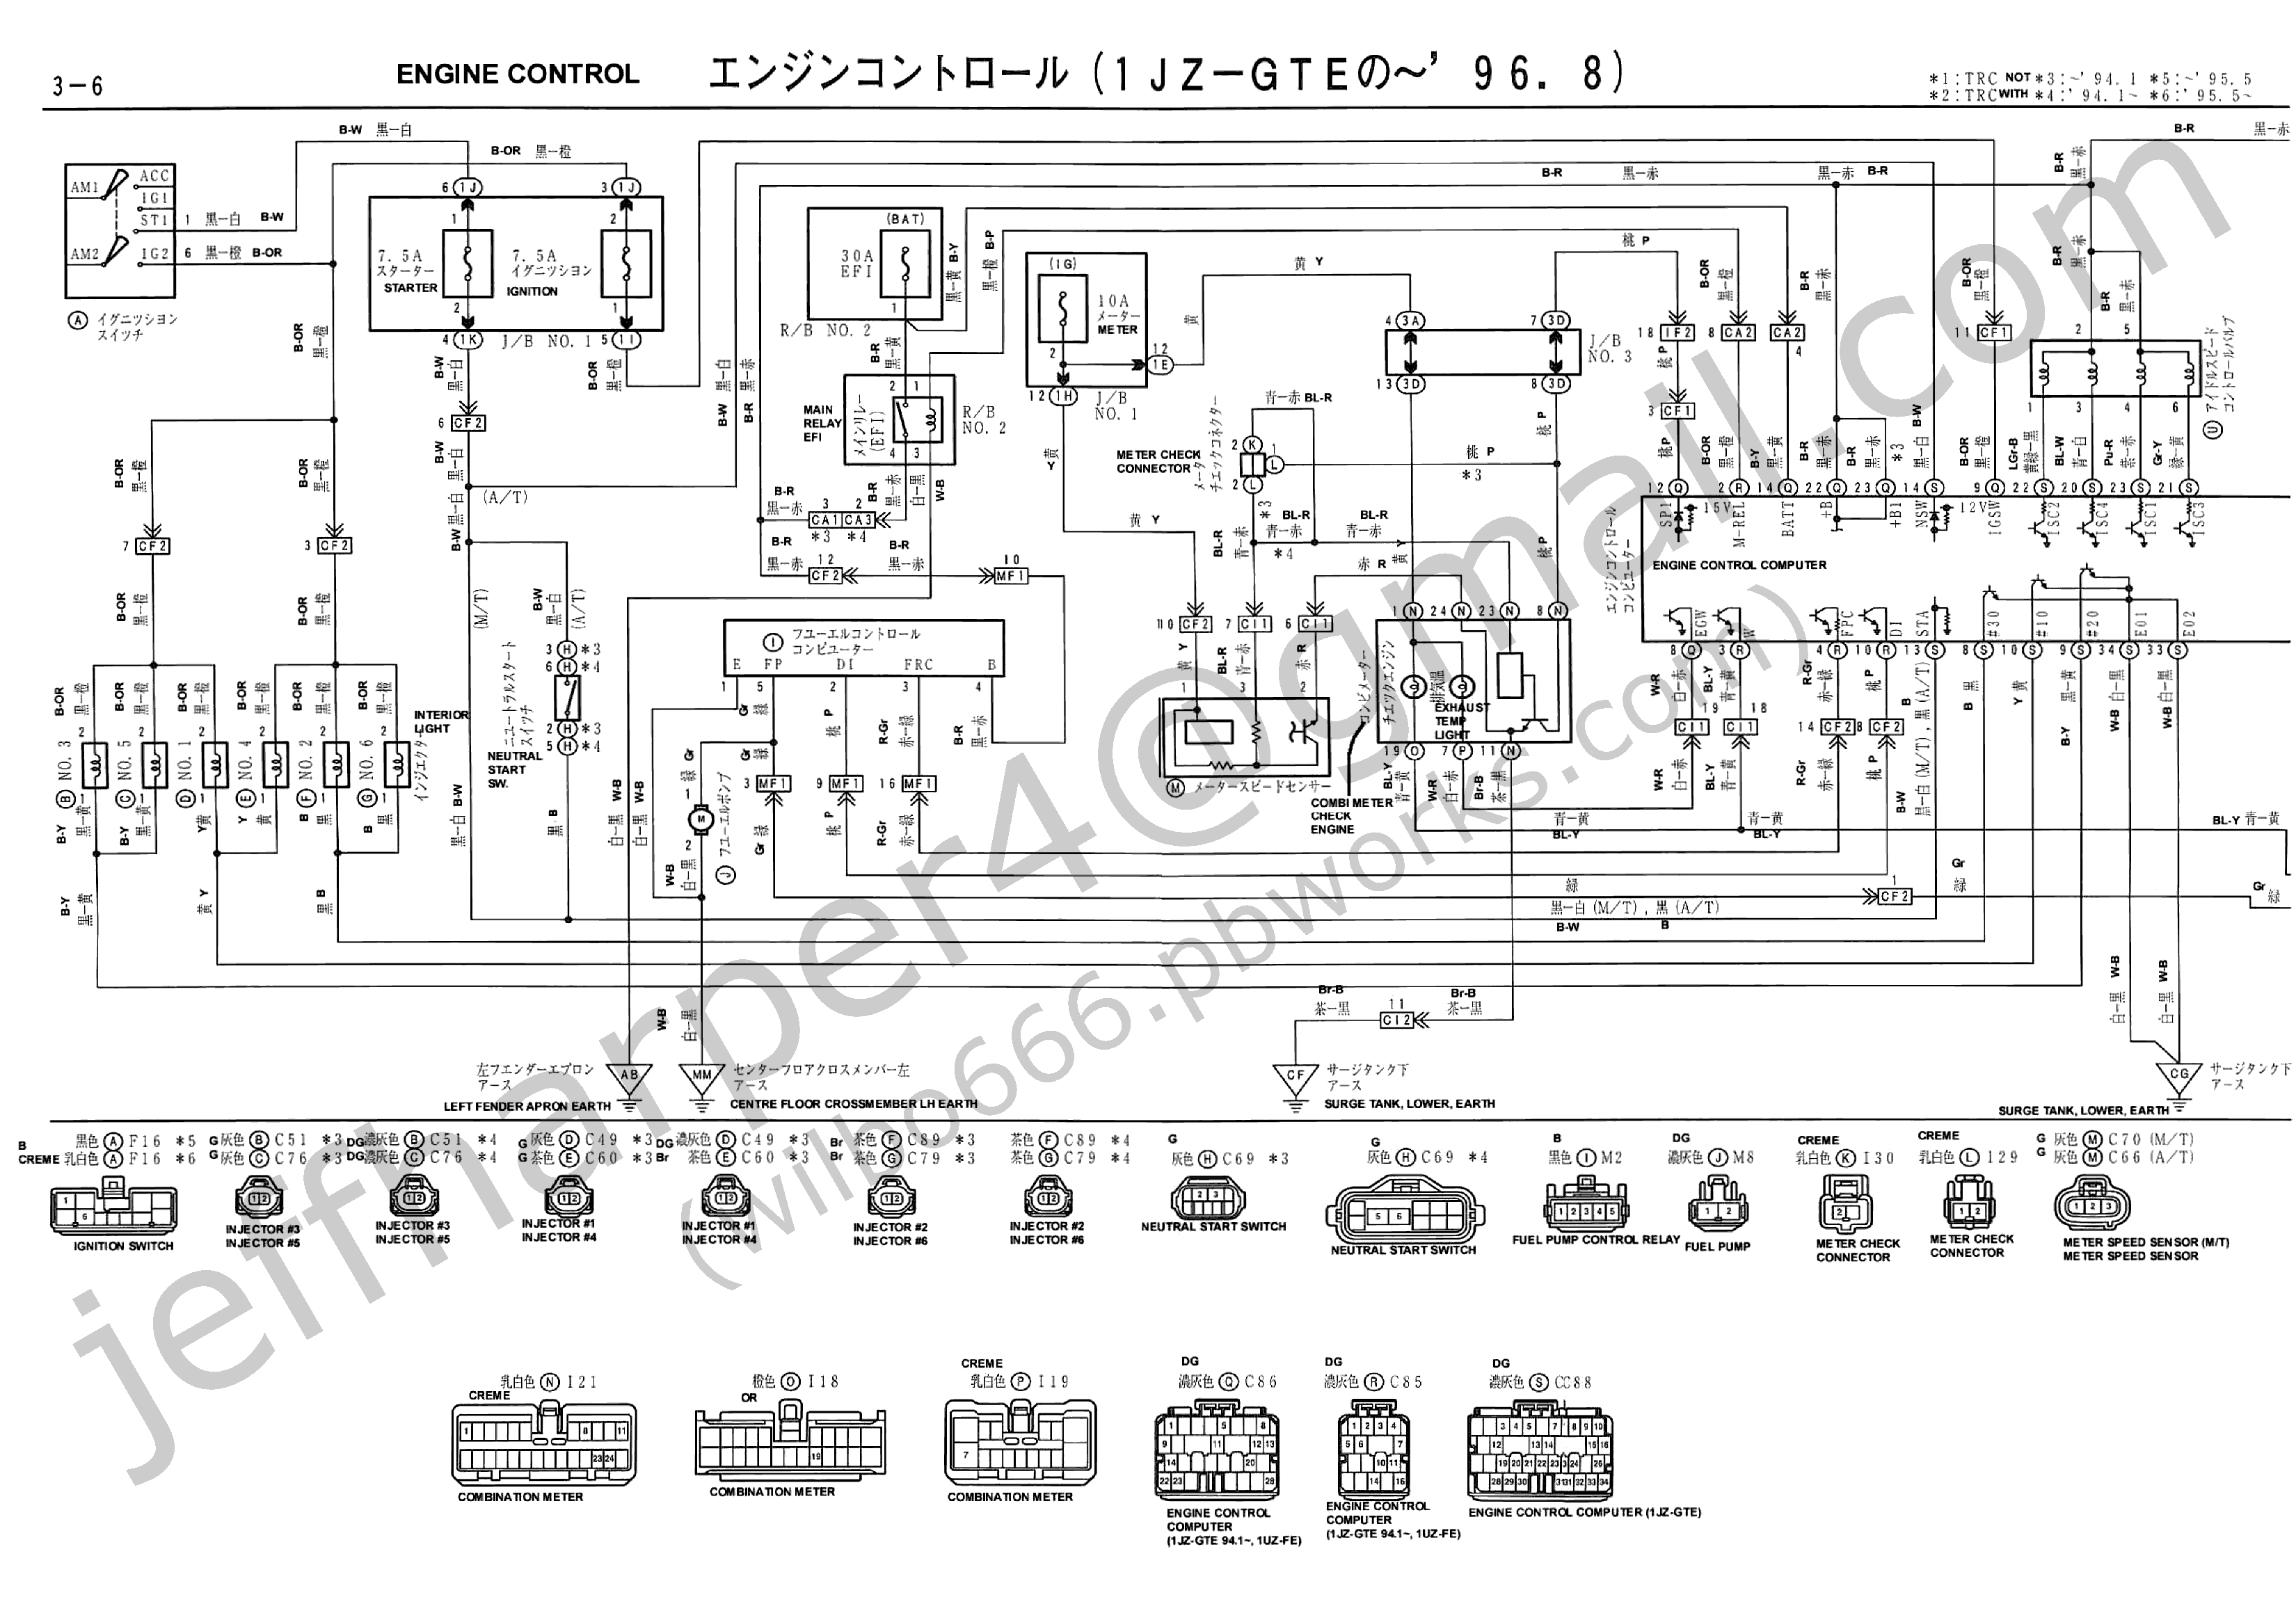 Neutral Safety Switch Wiring Diagram Car Tuning